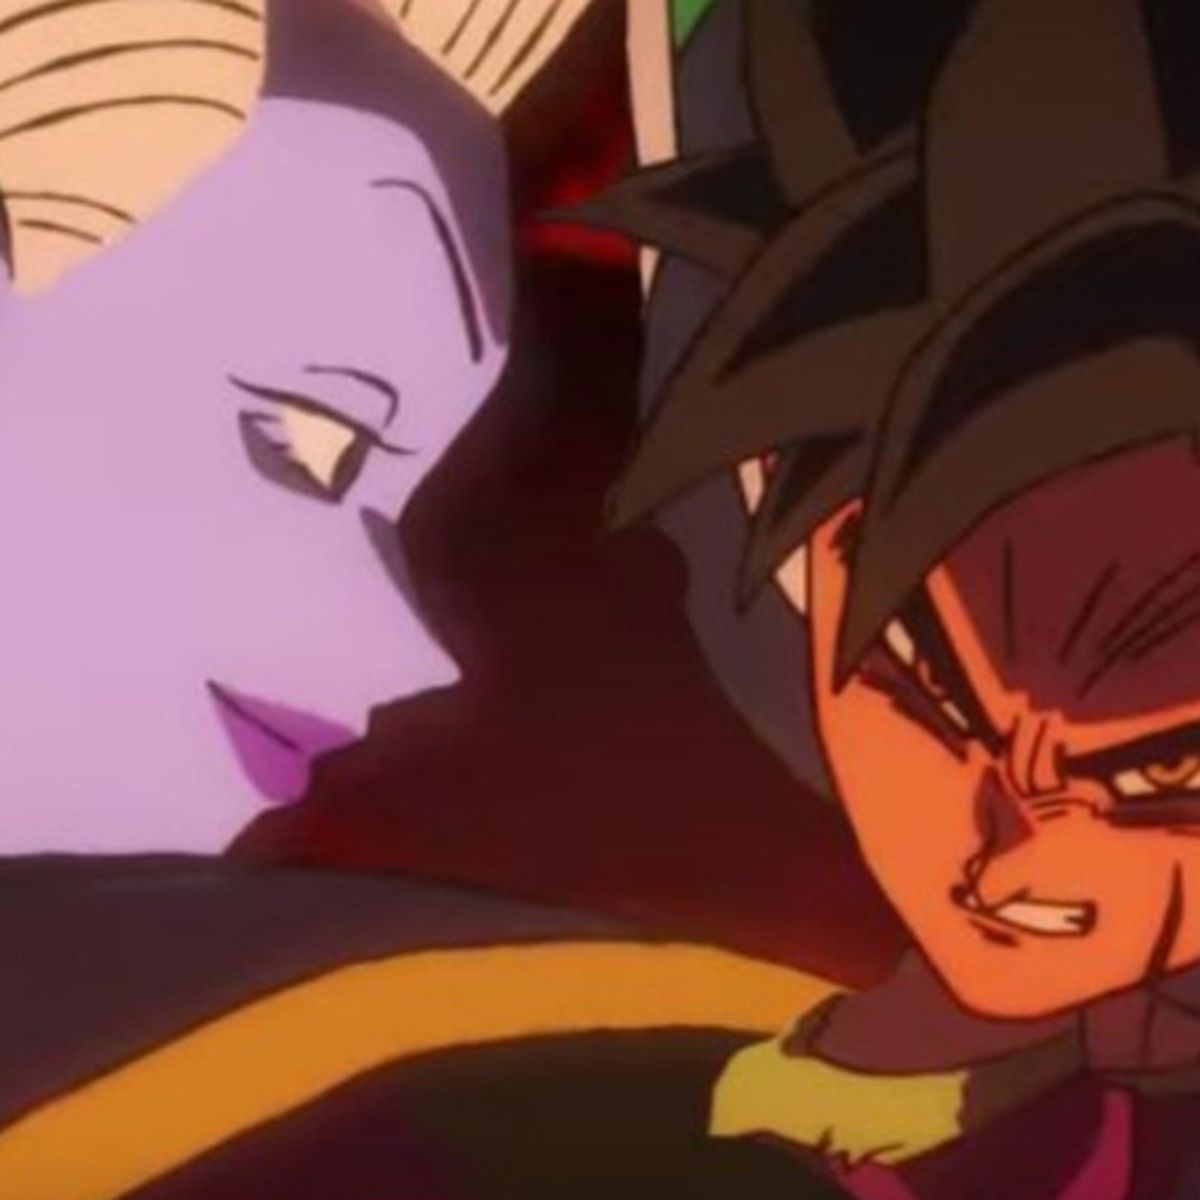 Dragon Ball Super Broly Increible Lucha Entre Whis Y Broly